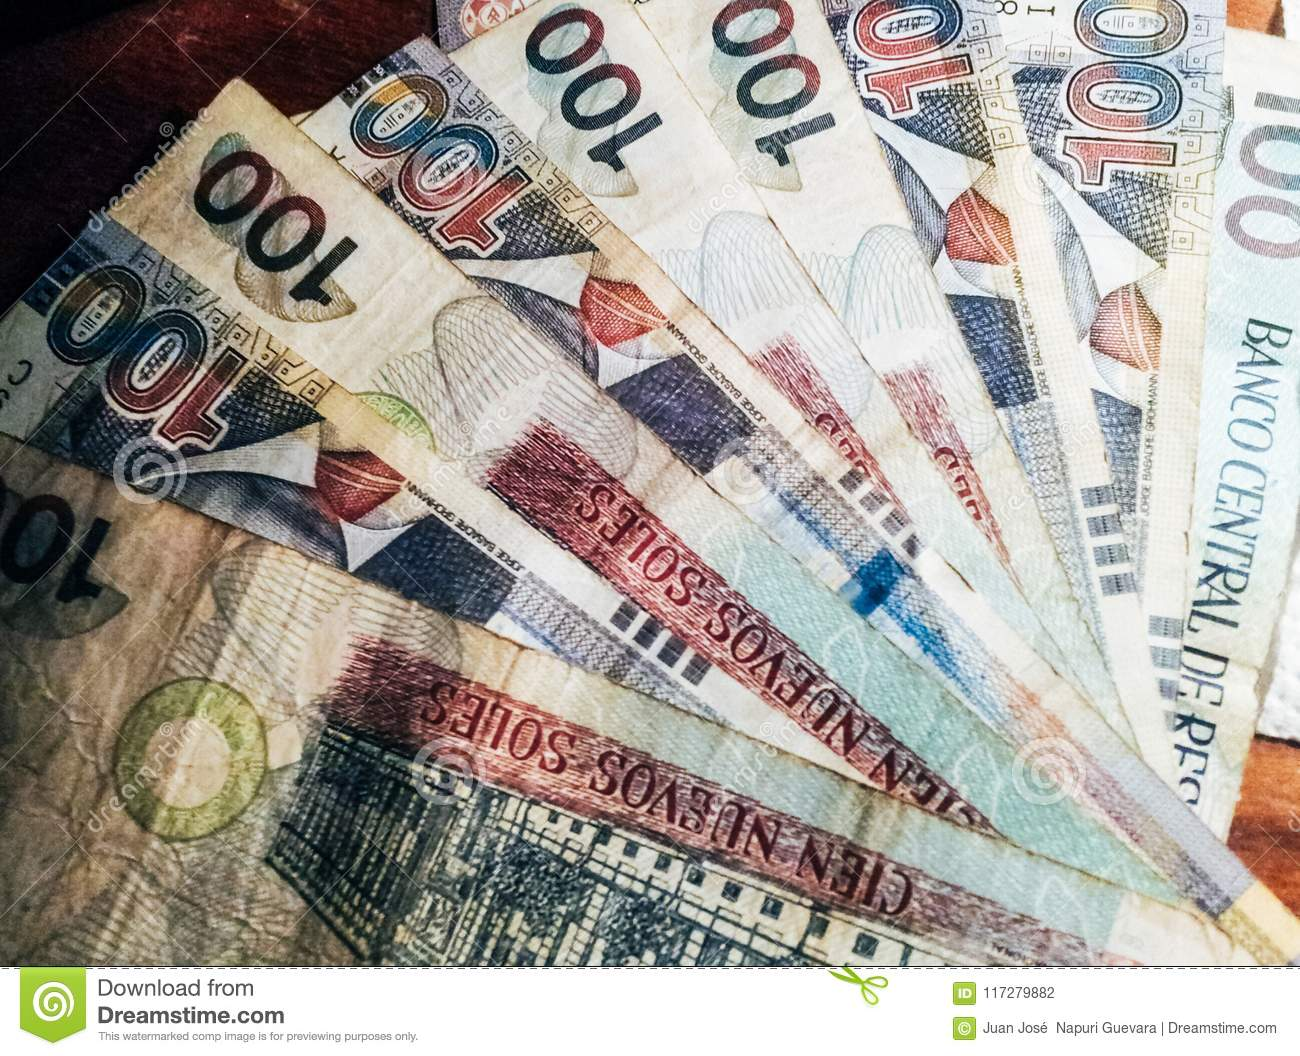 100 nuevos soles banknotes stock photo image of note 117279882 soles nuevos is the national currency of peru thecheapjerseys Choice Image